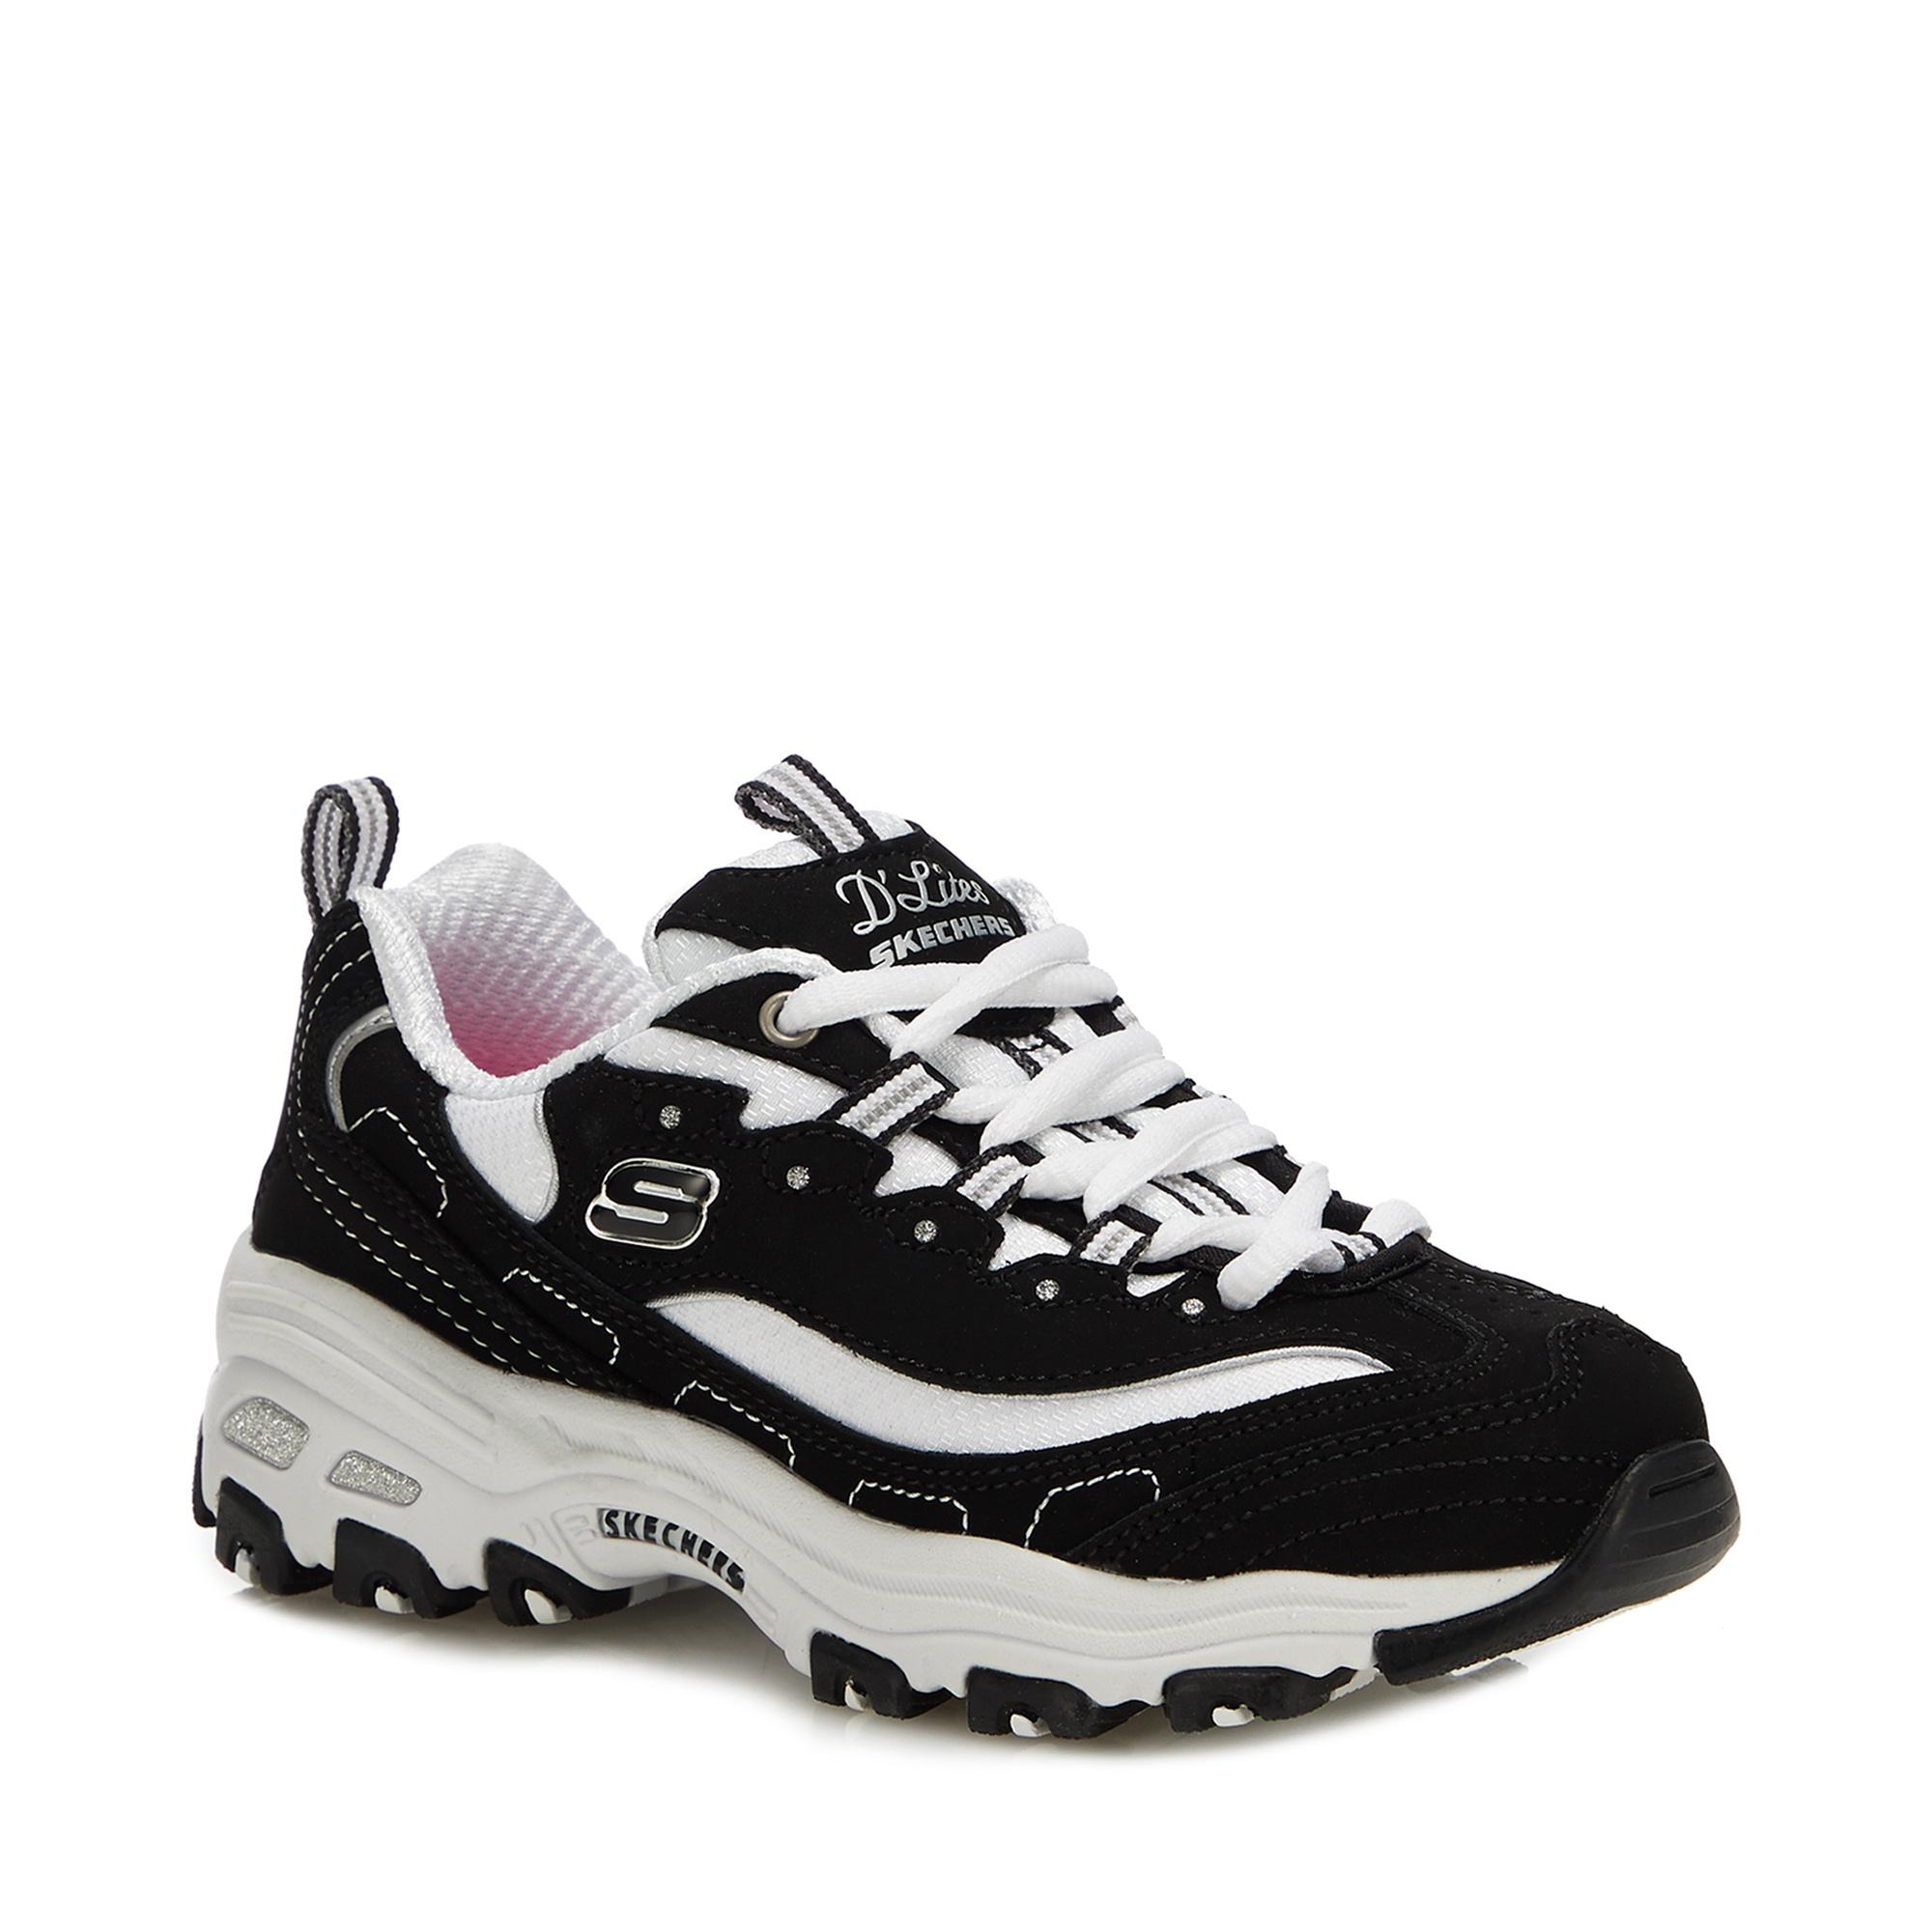 debenhams skechers